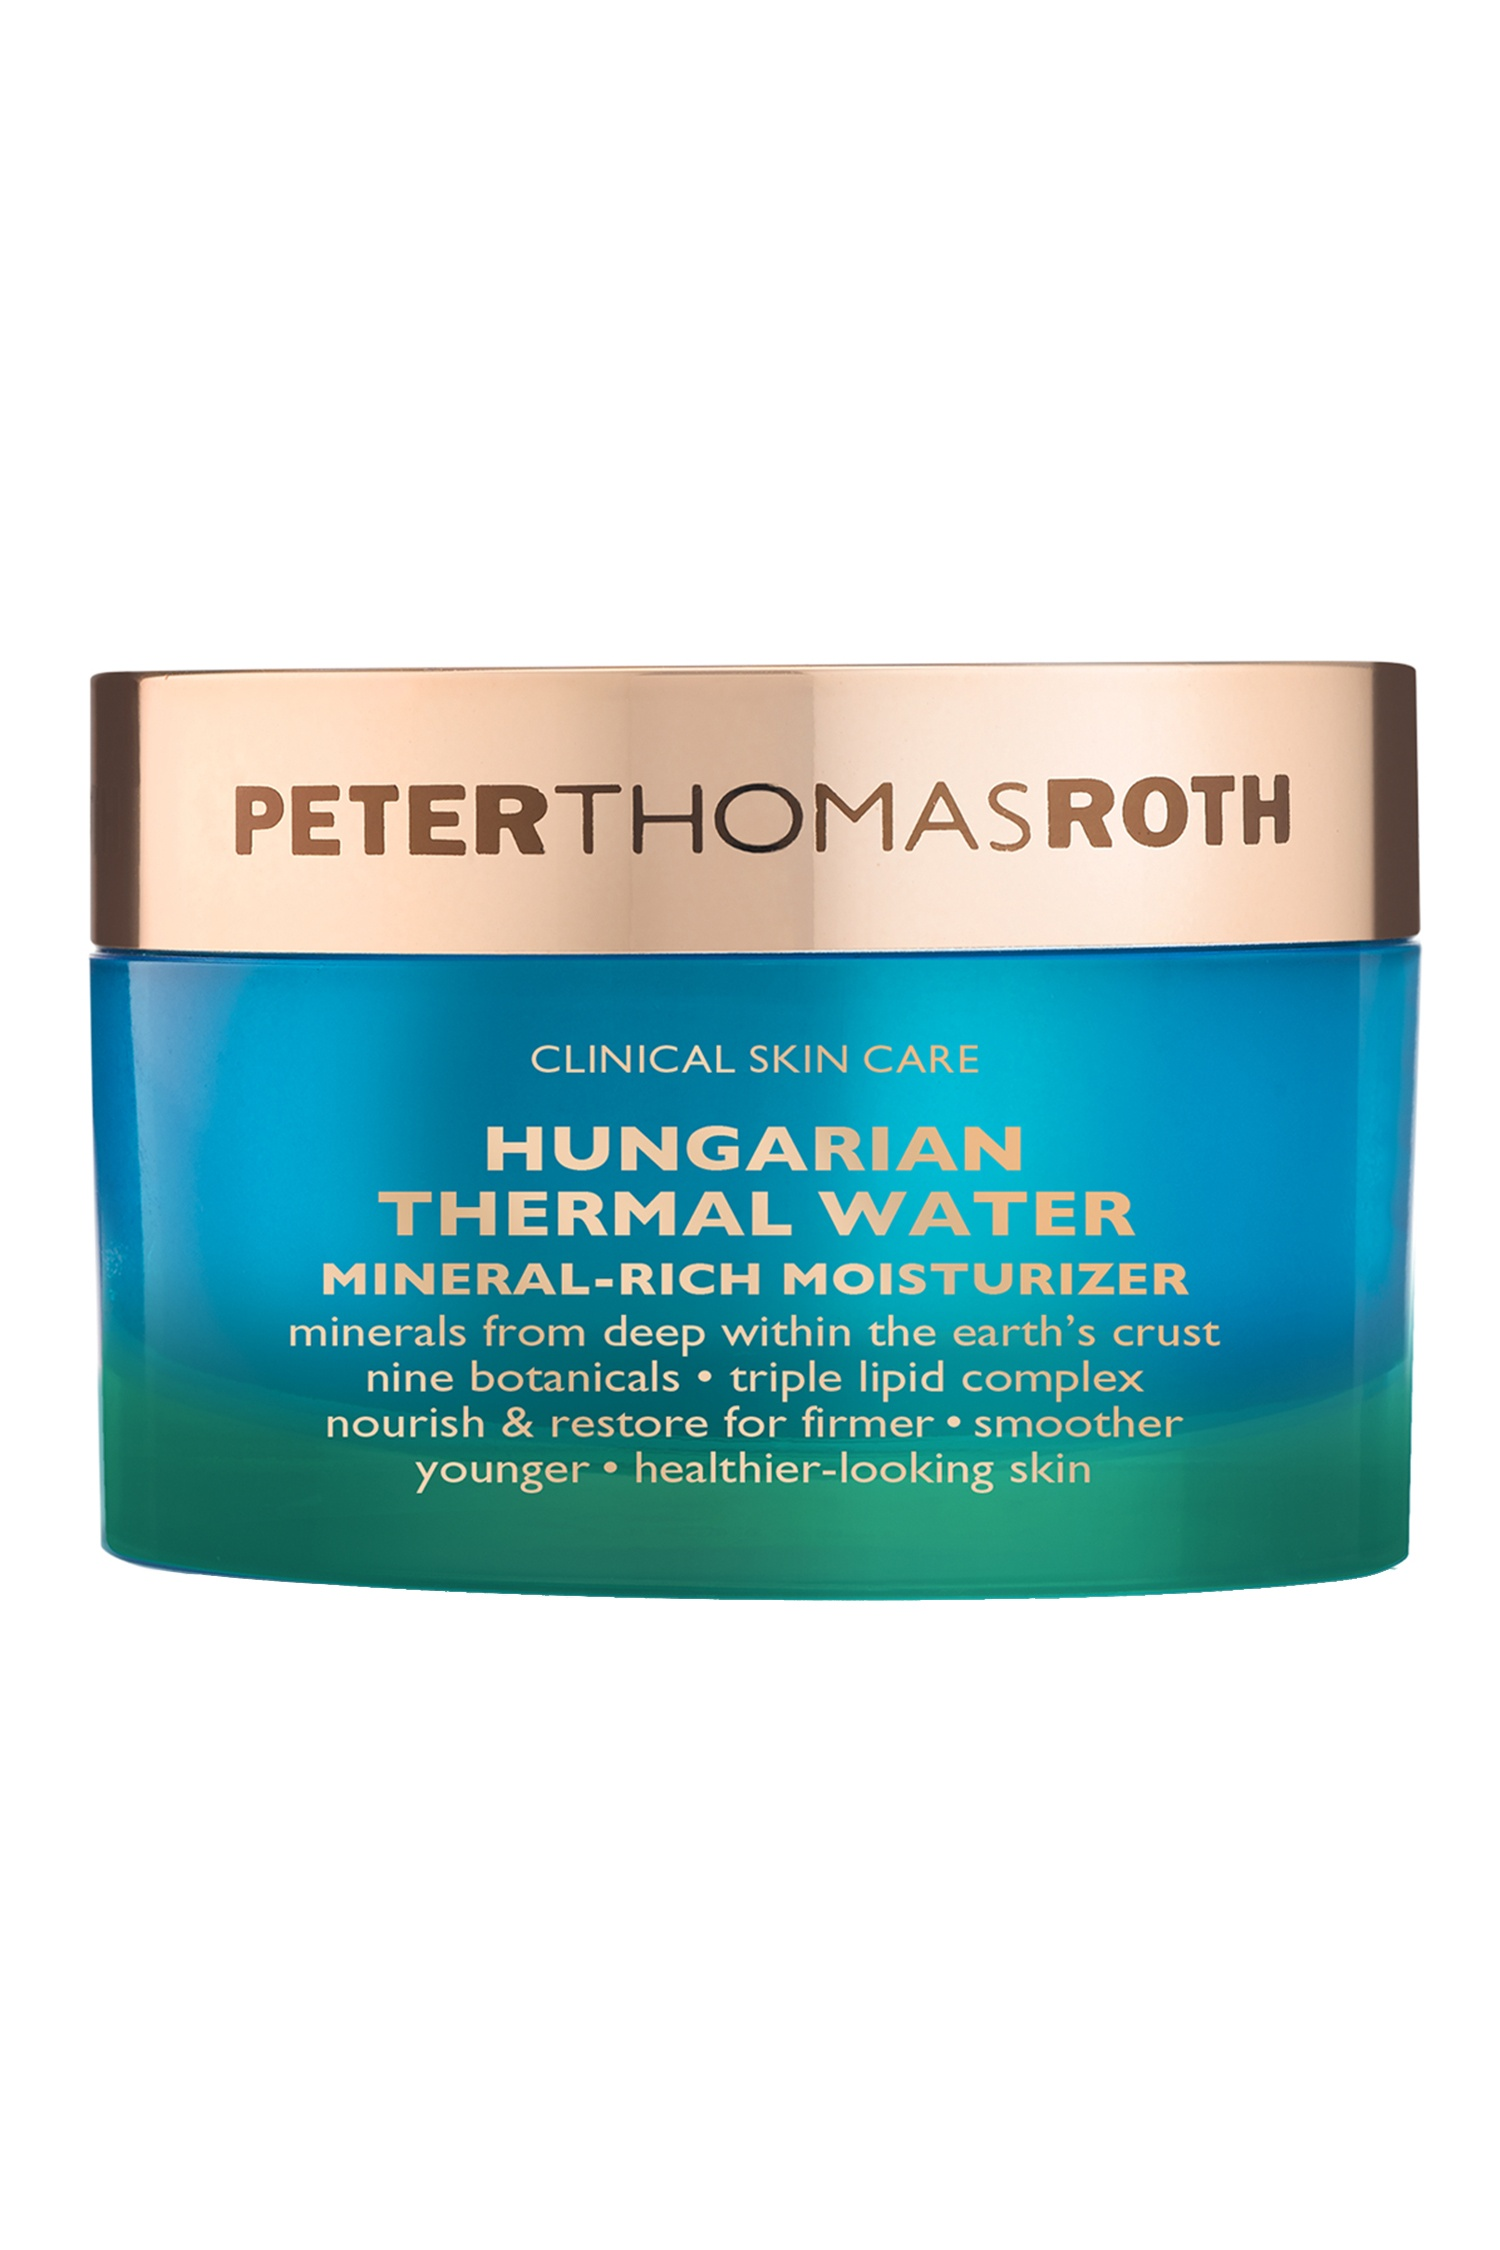 Крем для лица HUNGARIAN THERMAL WATER, 50 ml Peter Thomas Roth (фото)